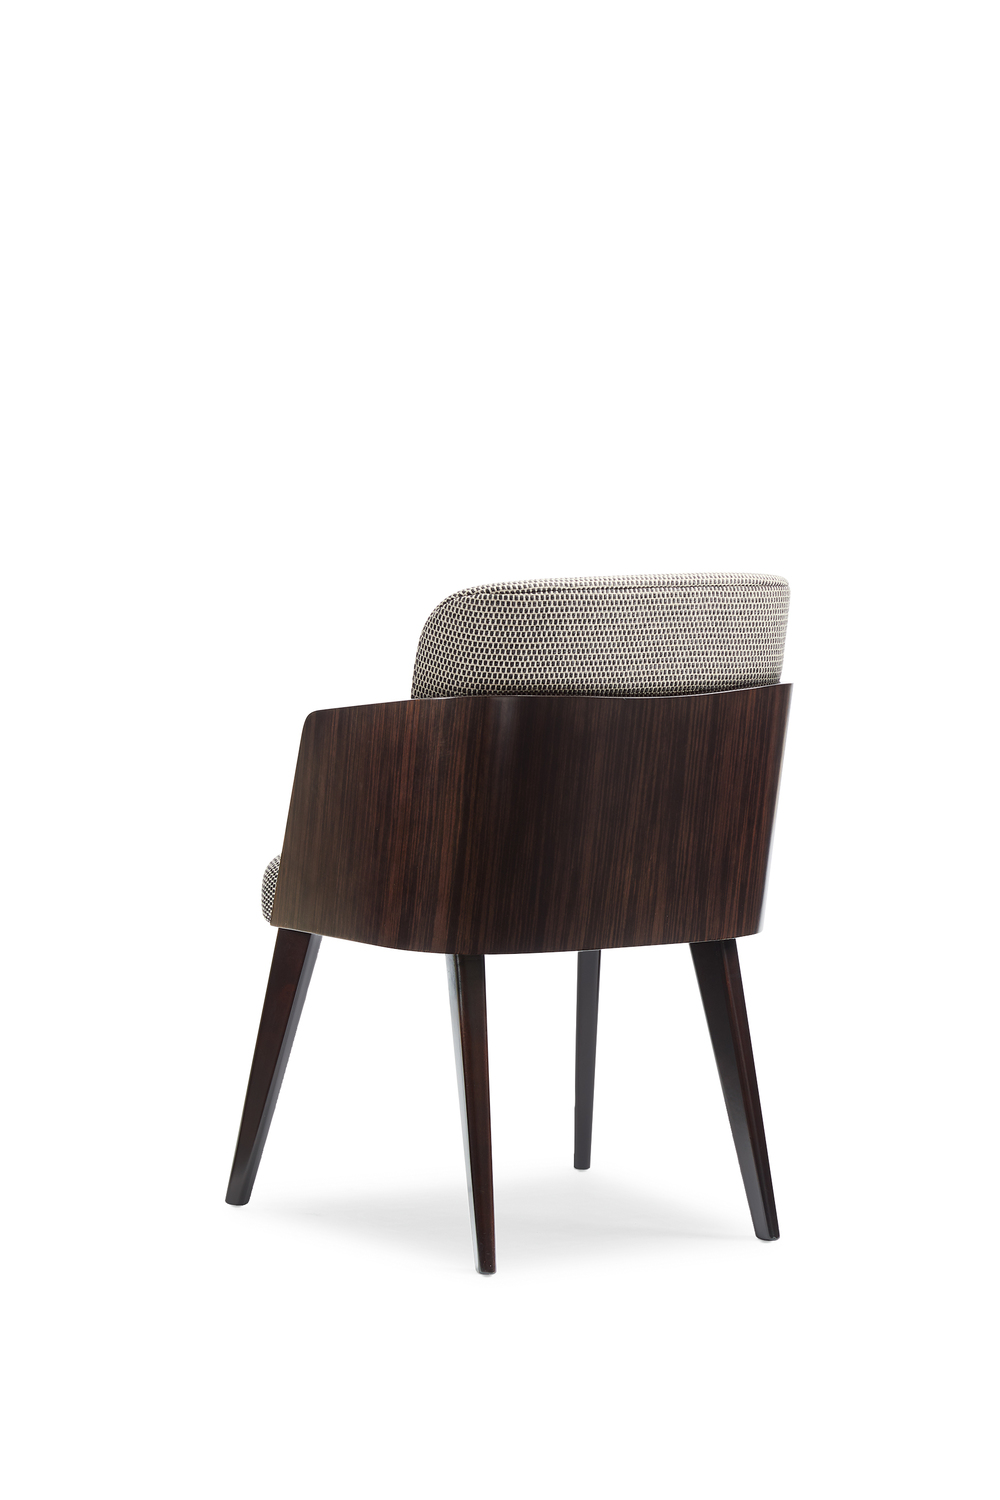 Caracole - The Olav Dining Chair